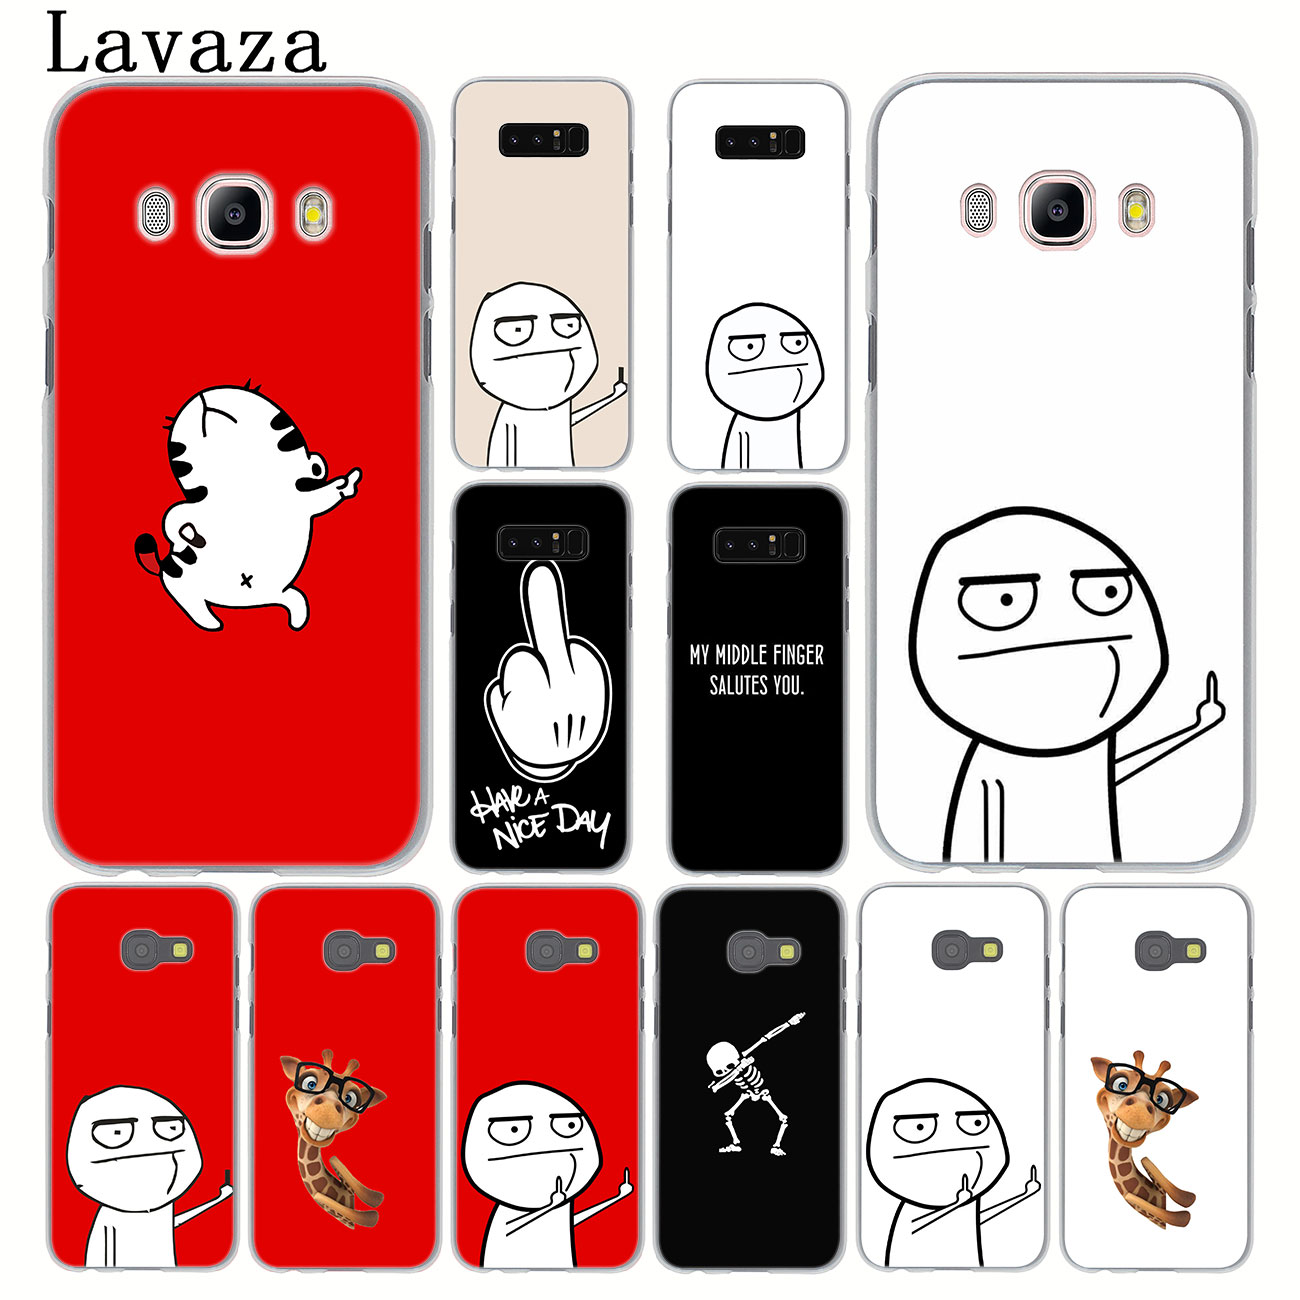 meme face Middle Finger Funny Cartoon Lovers Case for Samsung Galaxy Note 10 9 8 A9 A8 A7 A6 Plus 2018 A5 A3 2015 2016 2017 image